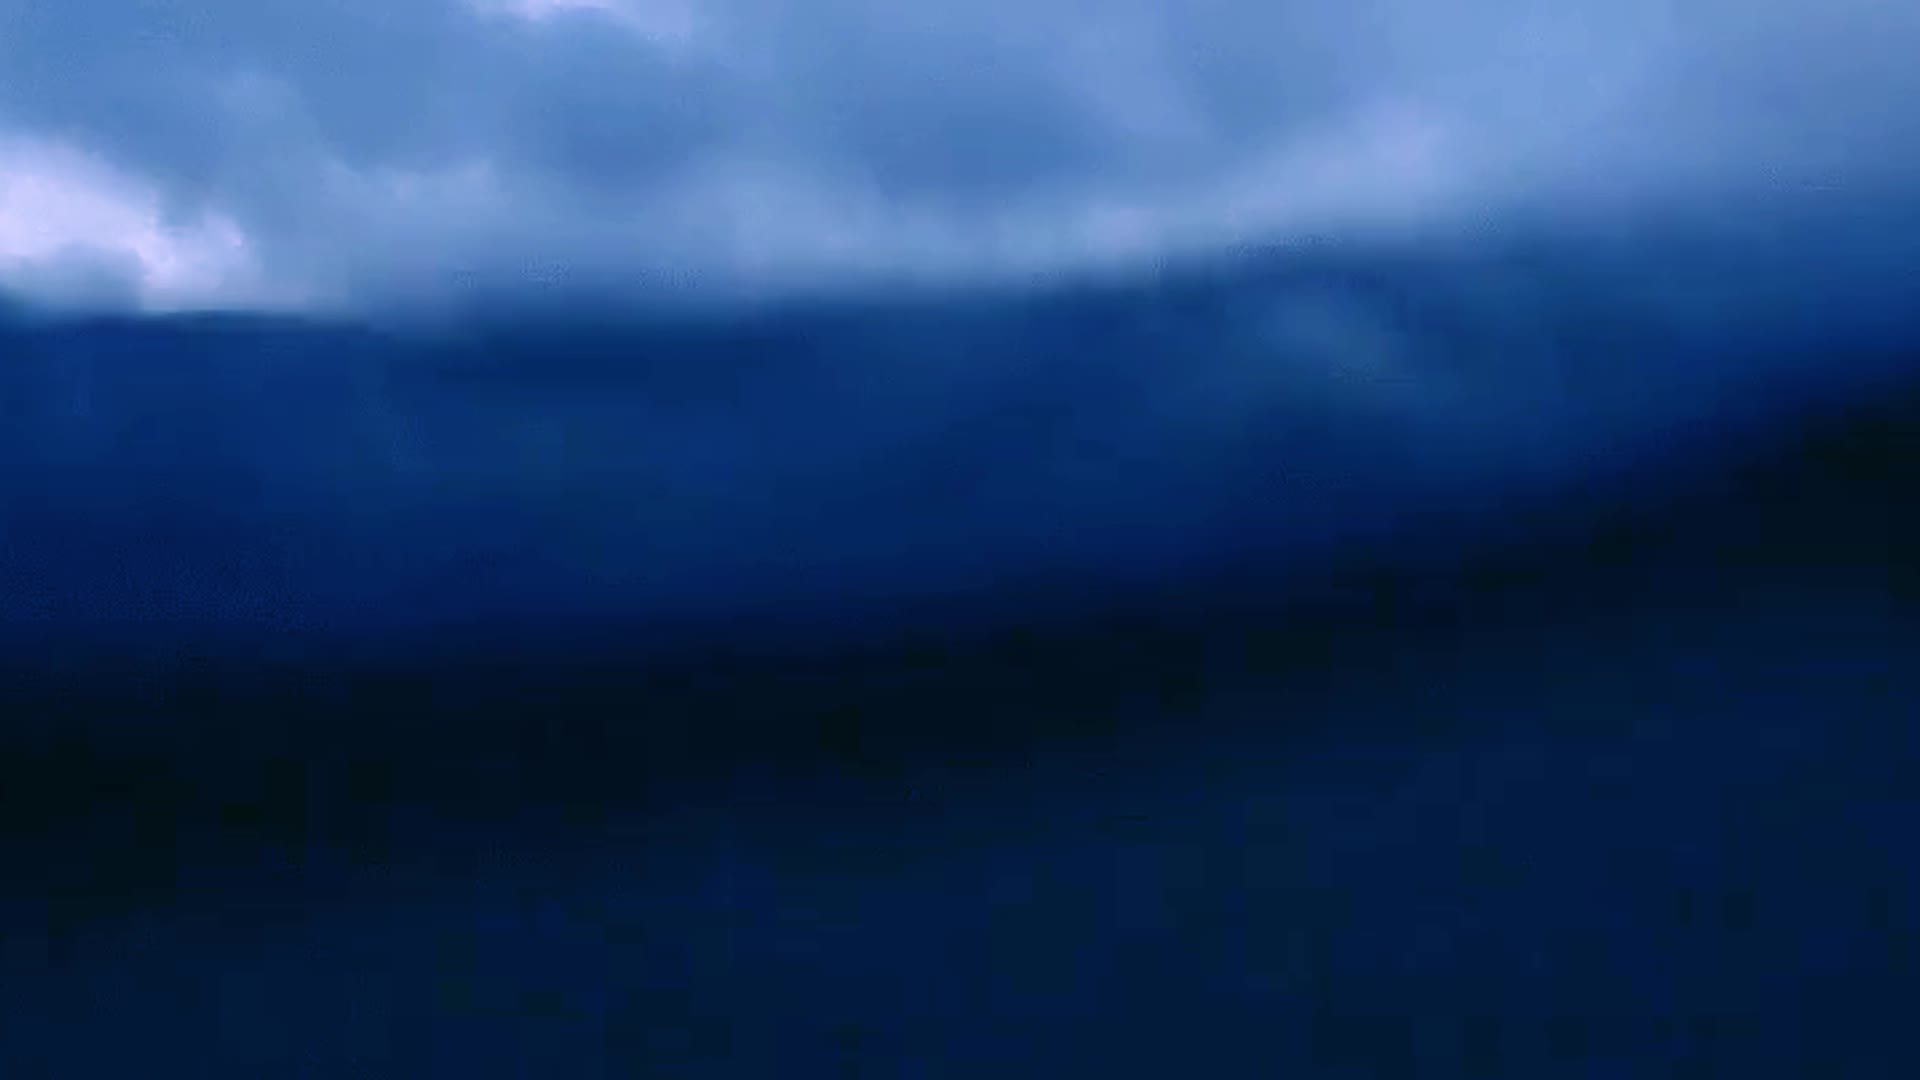 ocean waves looping 3 zoomed in best quality GIFs